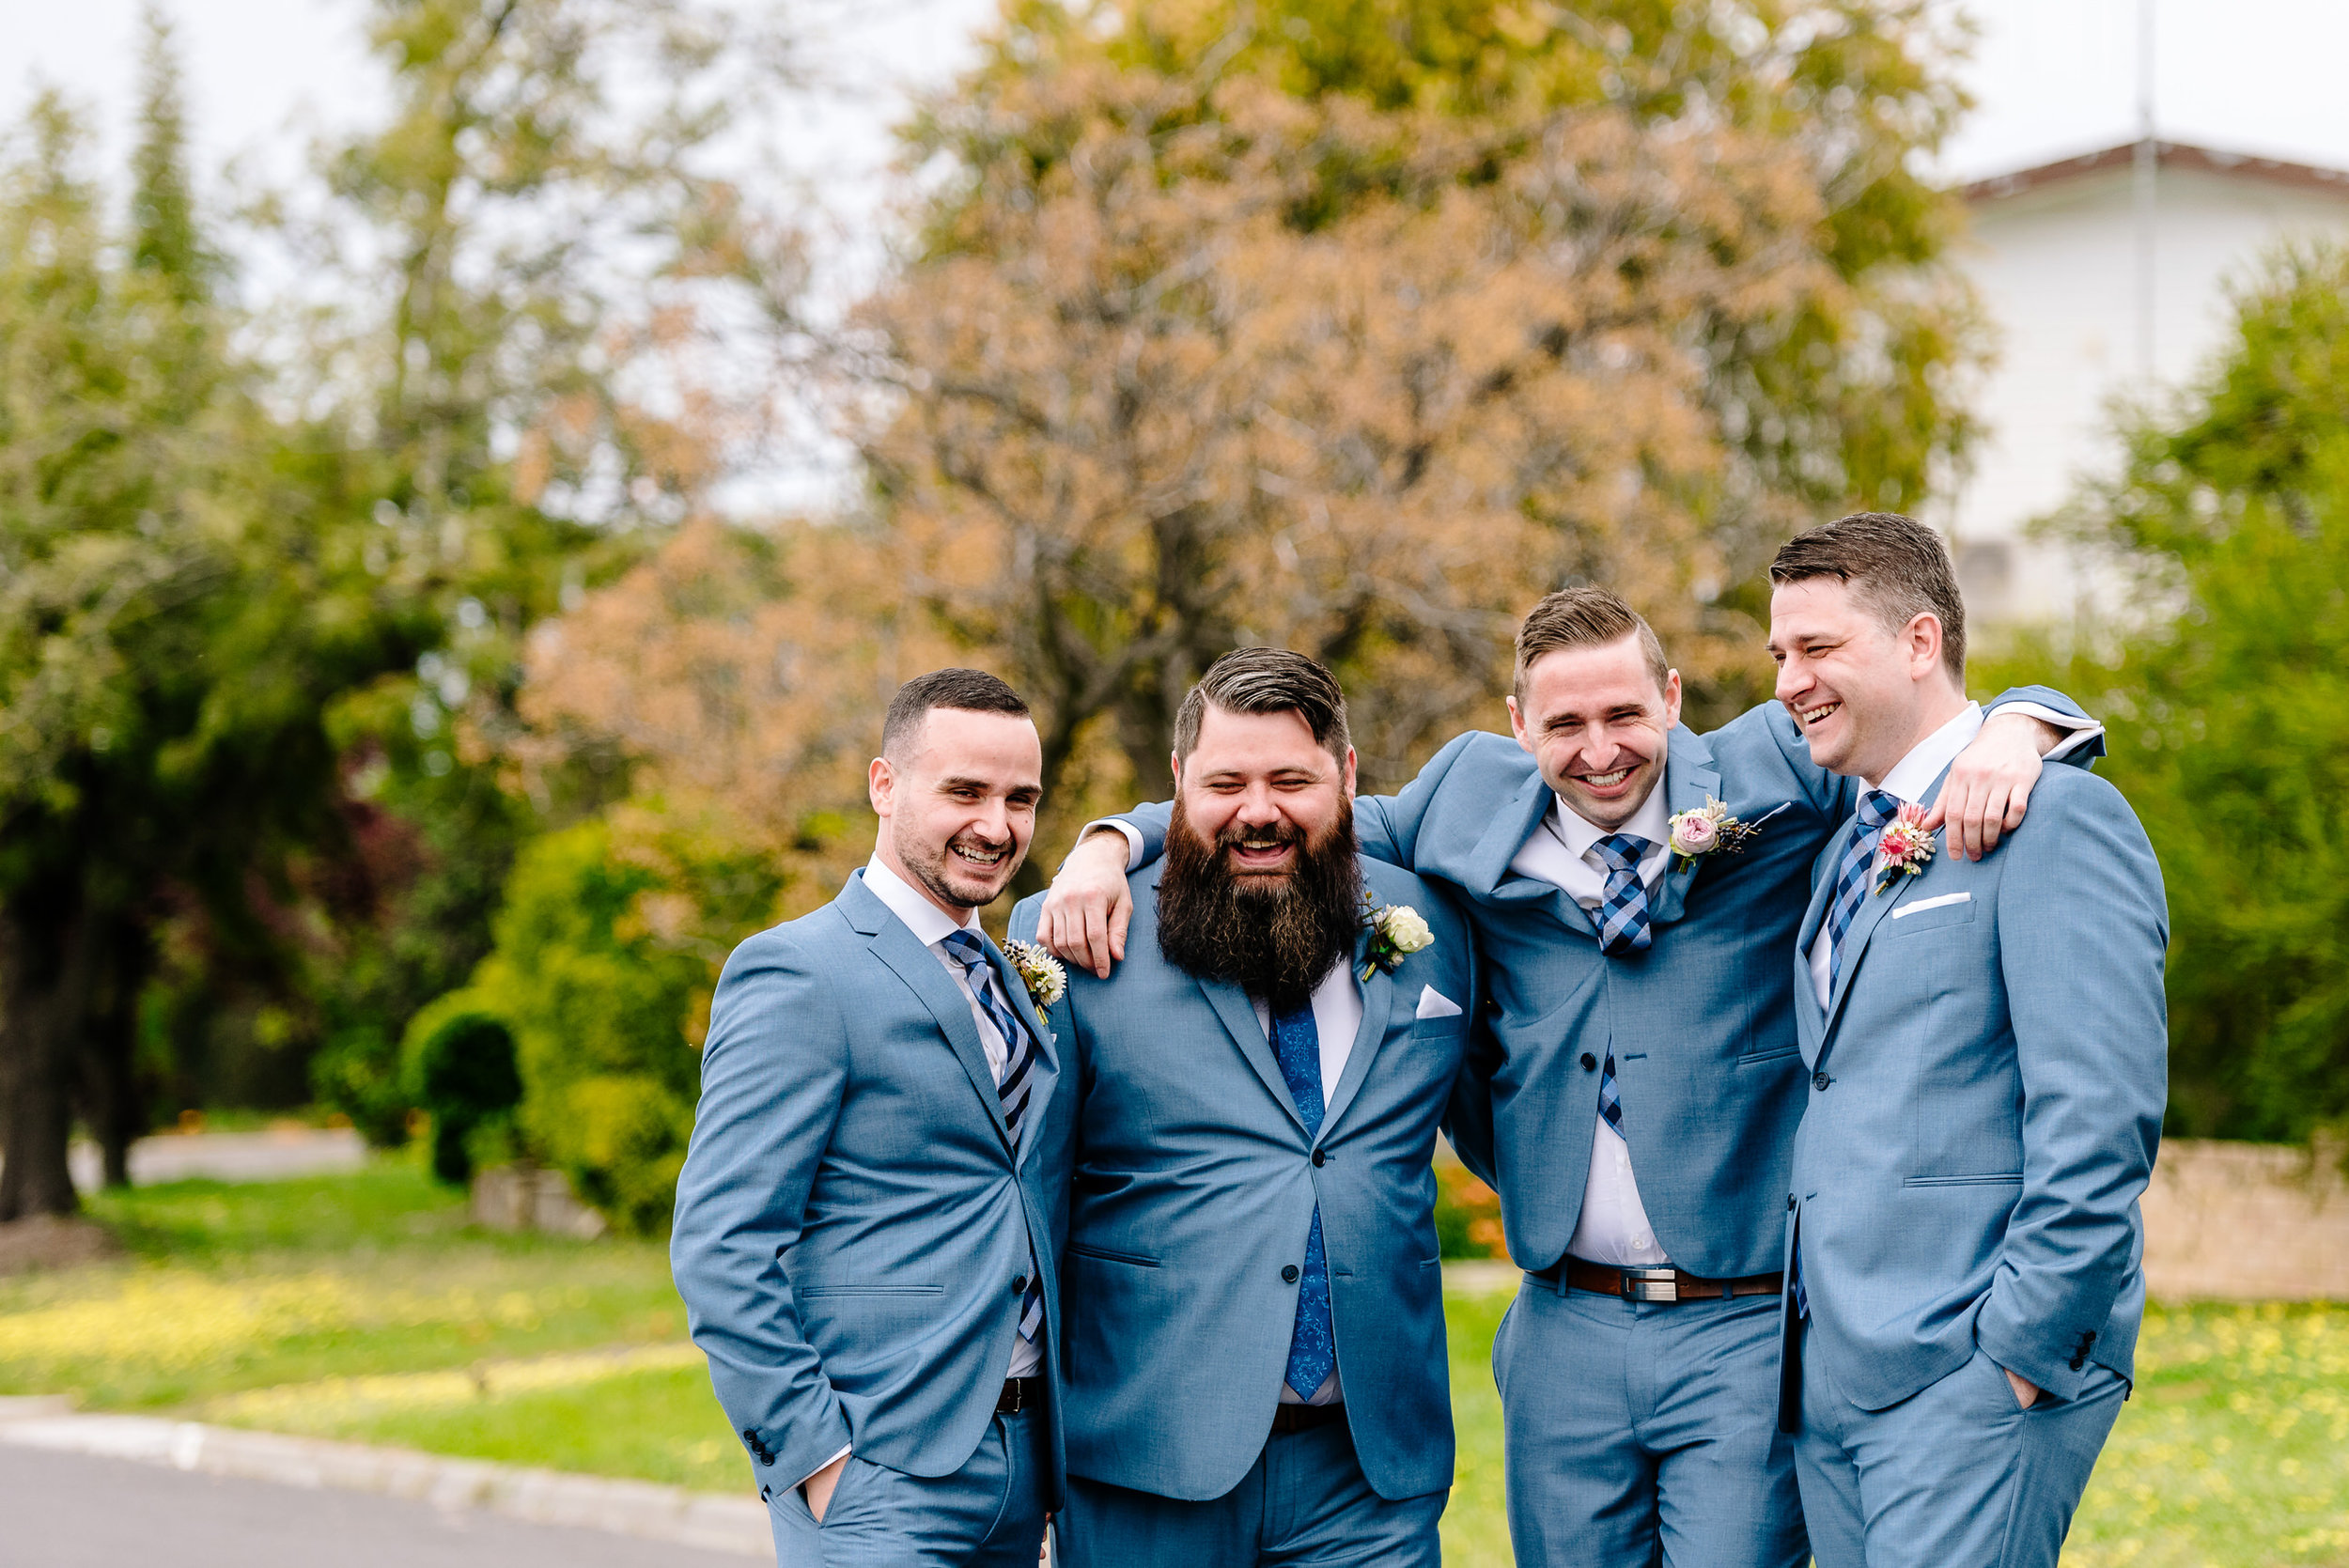 Chateau_Dore_Wedding_Photography_Justin_and_Jim-60.JPG